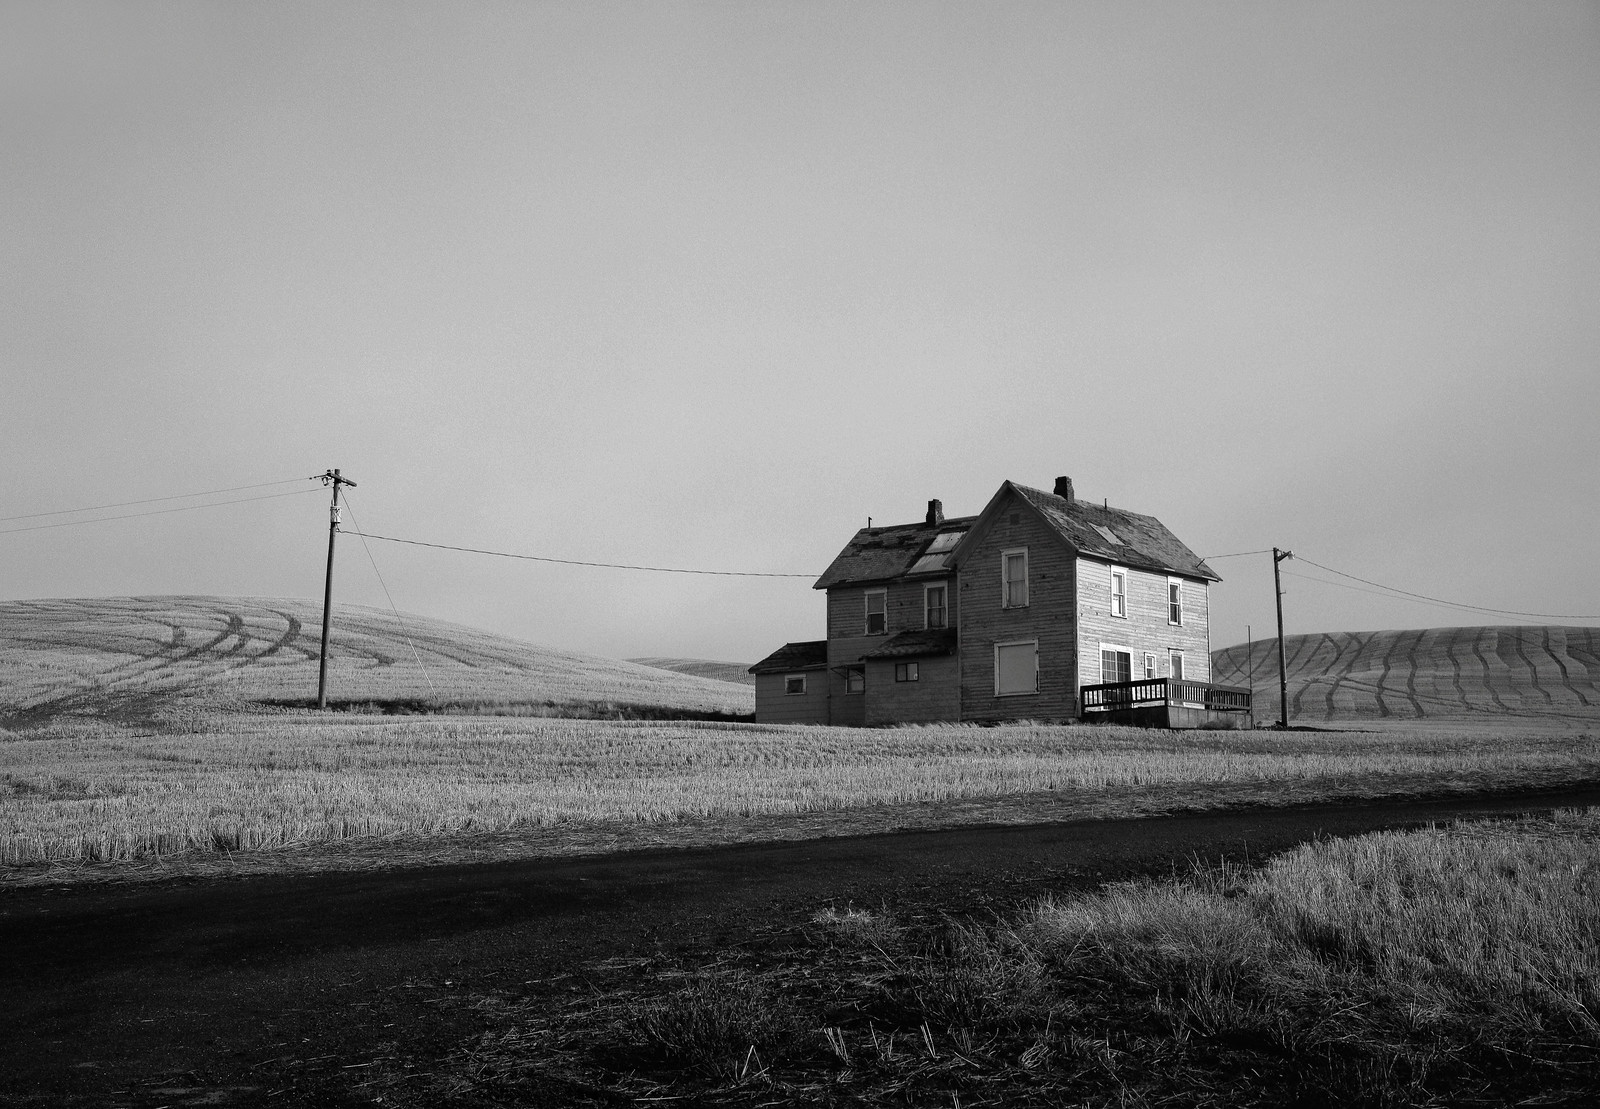 Farmhouse, Eastern Washington | by austin granger